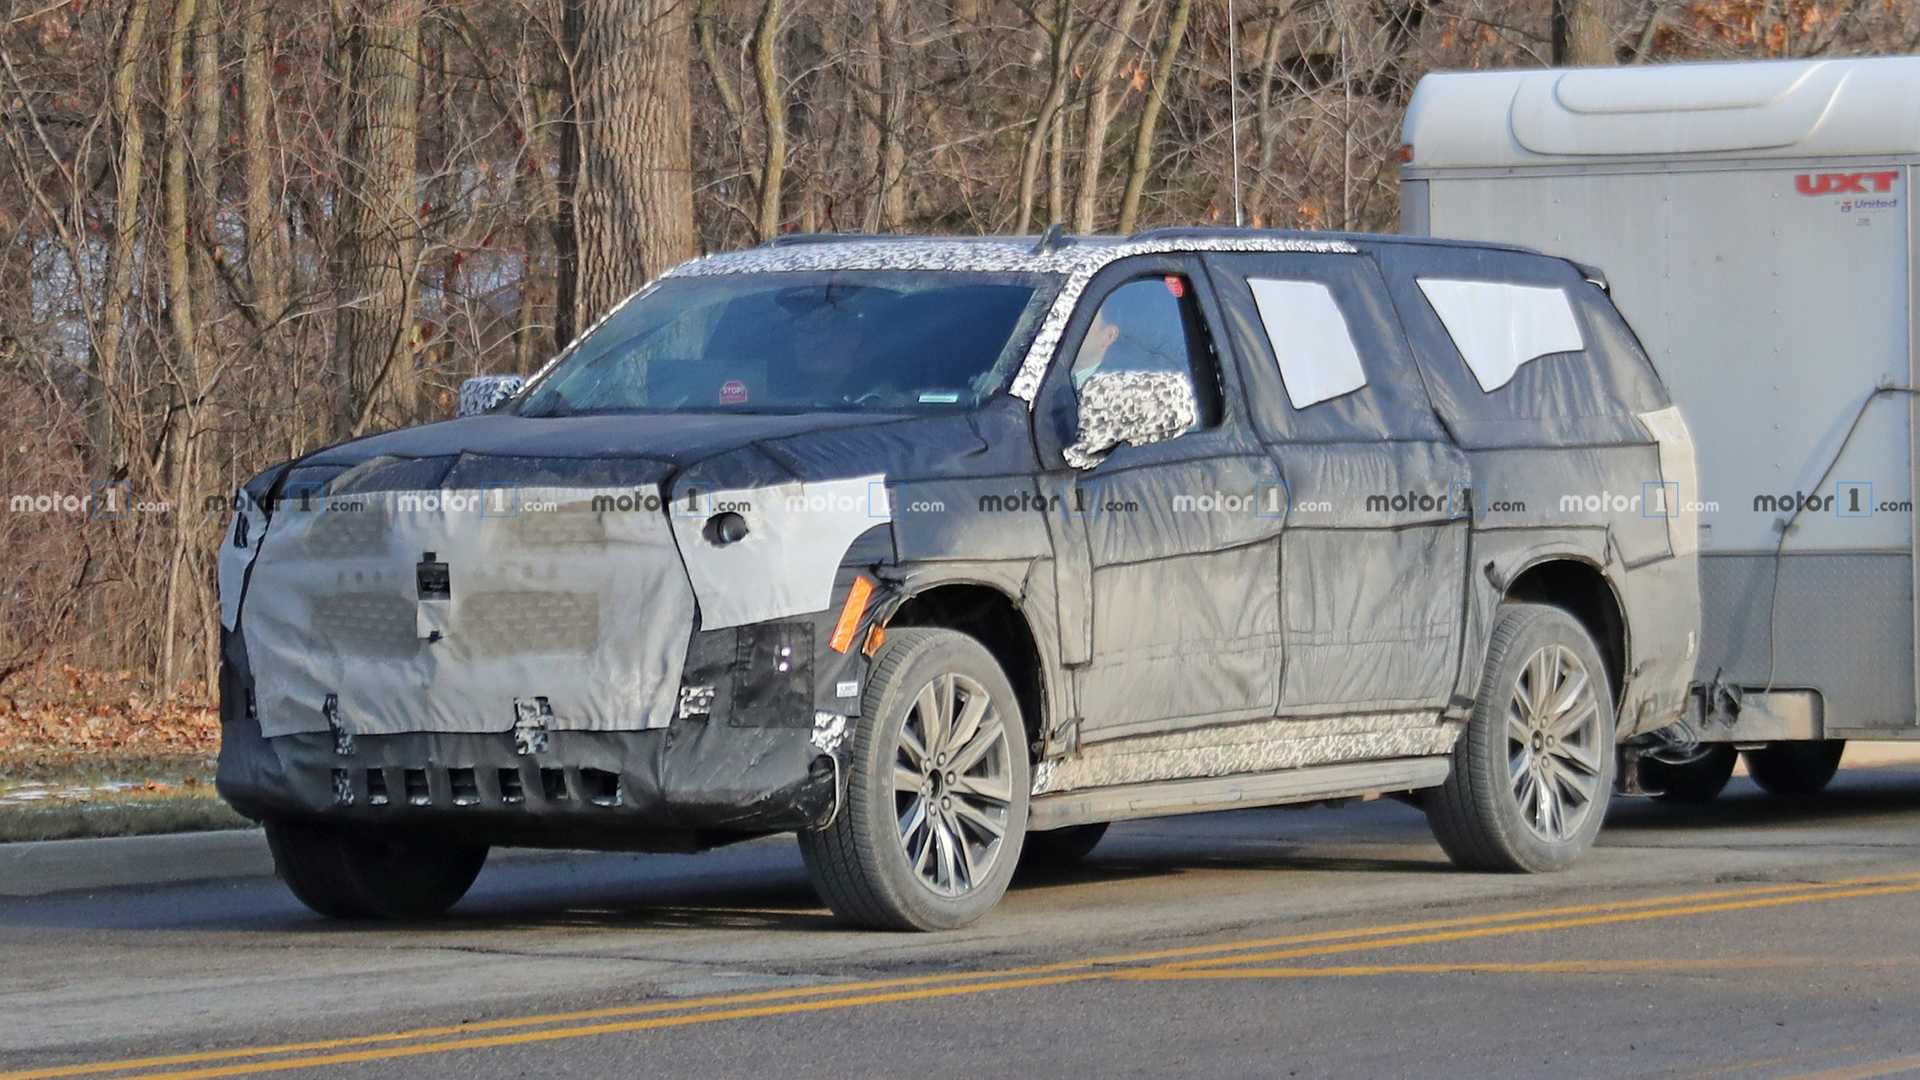 16 All New 2020 Cadillac Escalade Hybrid Price for 2020 Cadillac Escalade Hybrid